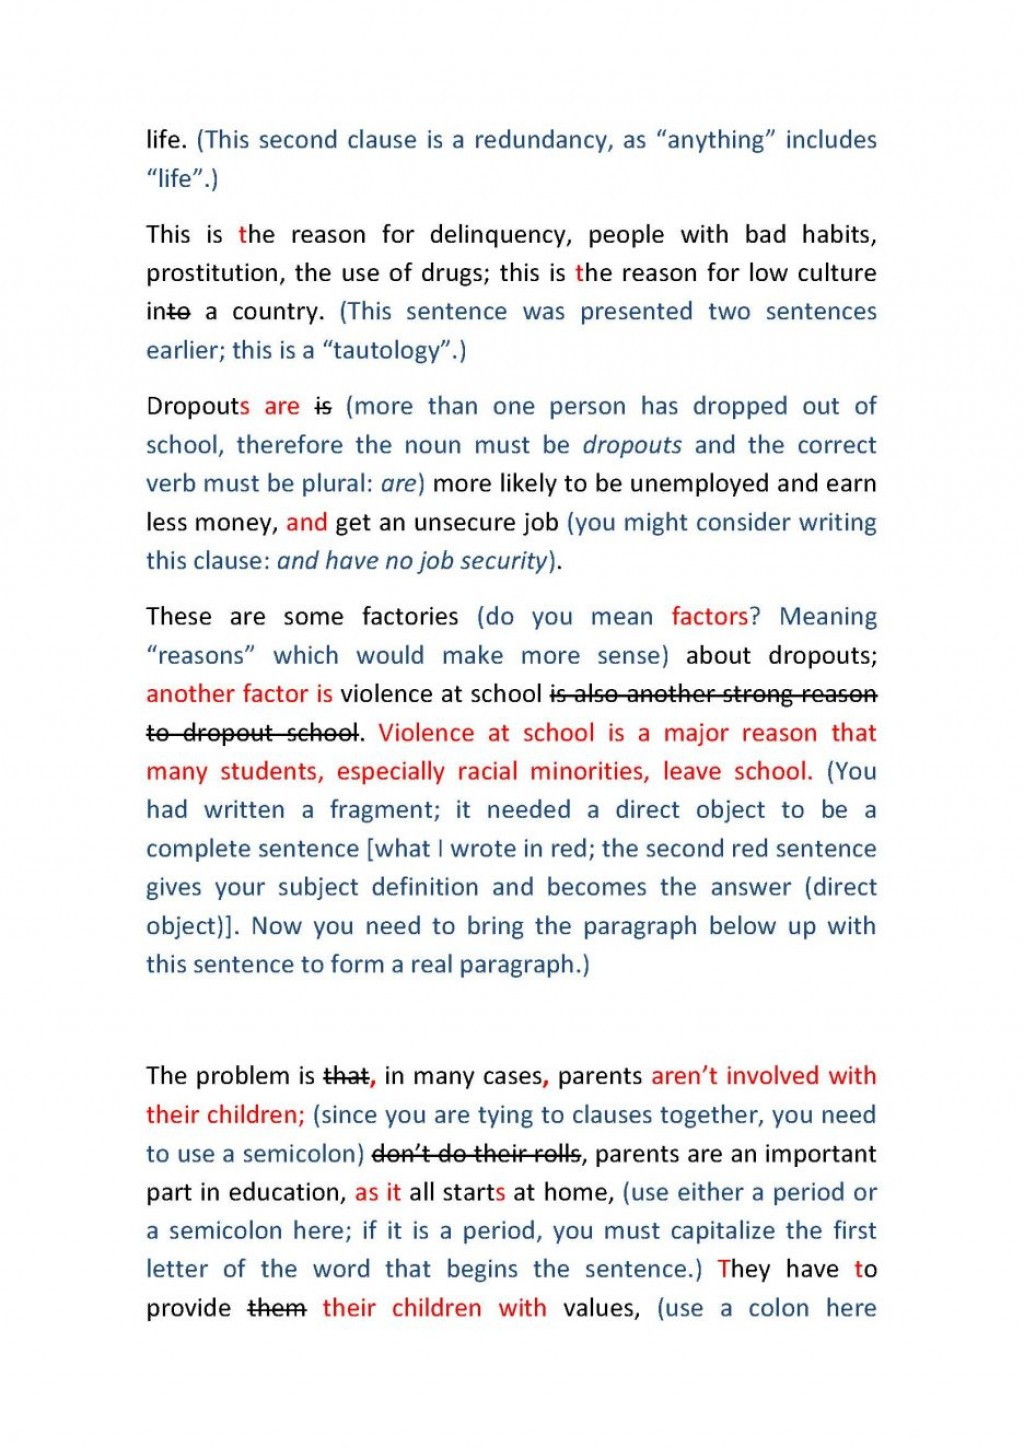 017 Essay Example On Father Dropouts Dialey And Graded Page Daughter Relationship School My In French Thematic Sun Johnson Urdu Hindi Marathi An Order For Year Muslim Sanskrit Outstanding Fatherhood Mother Motherhood Large